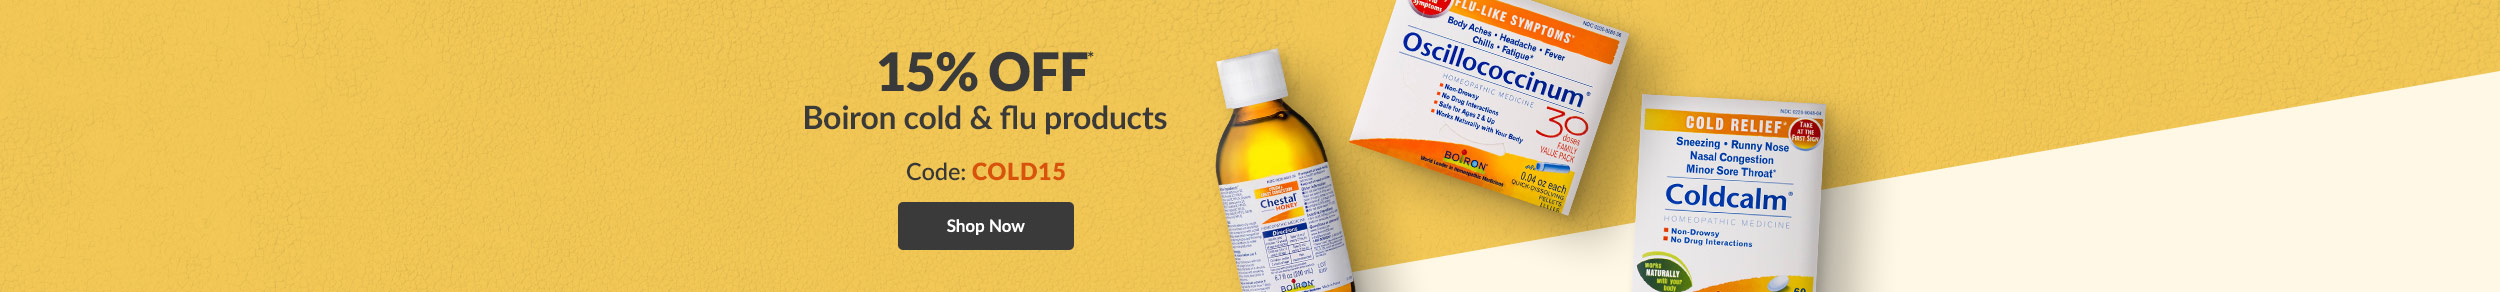 15% OFF Boiron cold & flu products - Code: COLD15. SHOP NOW!